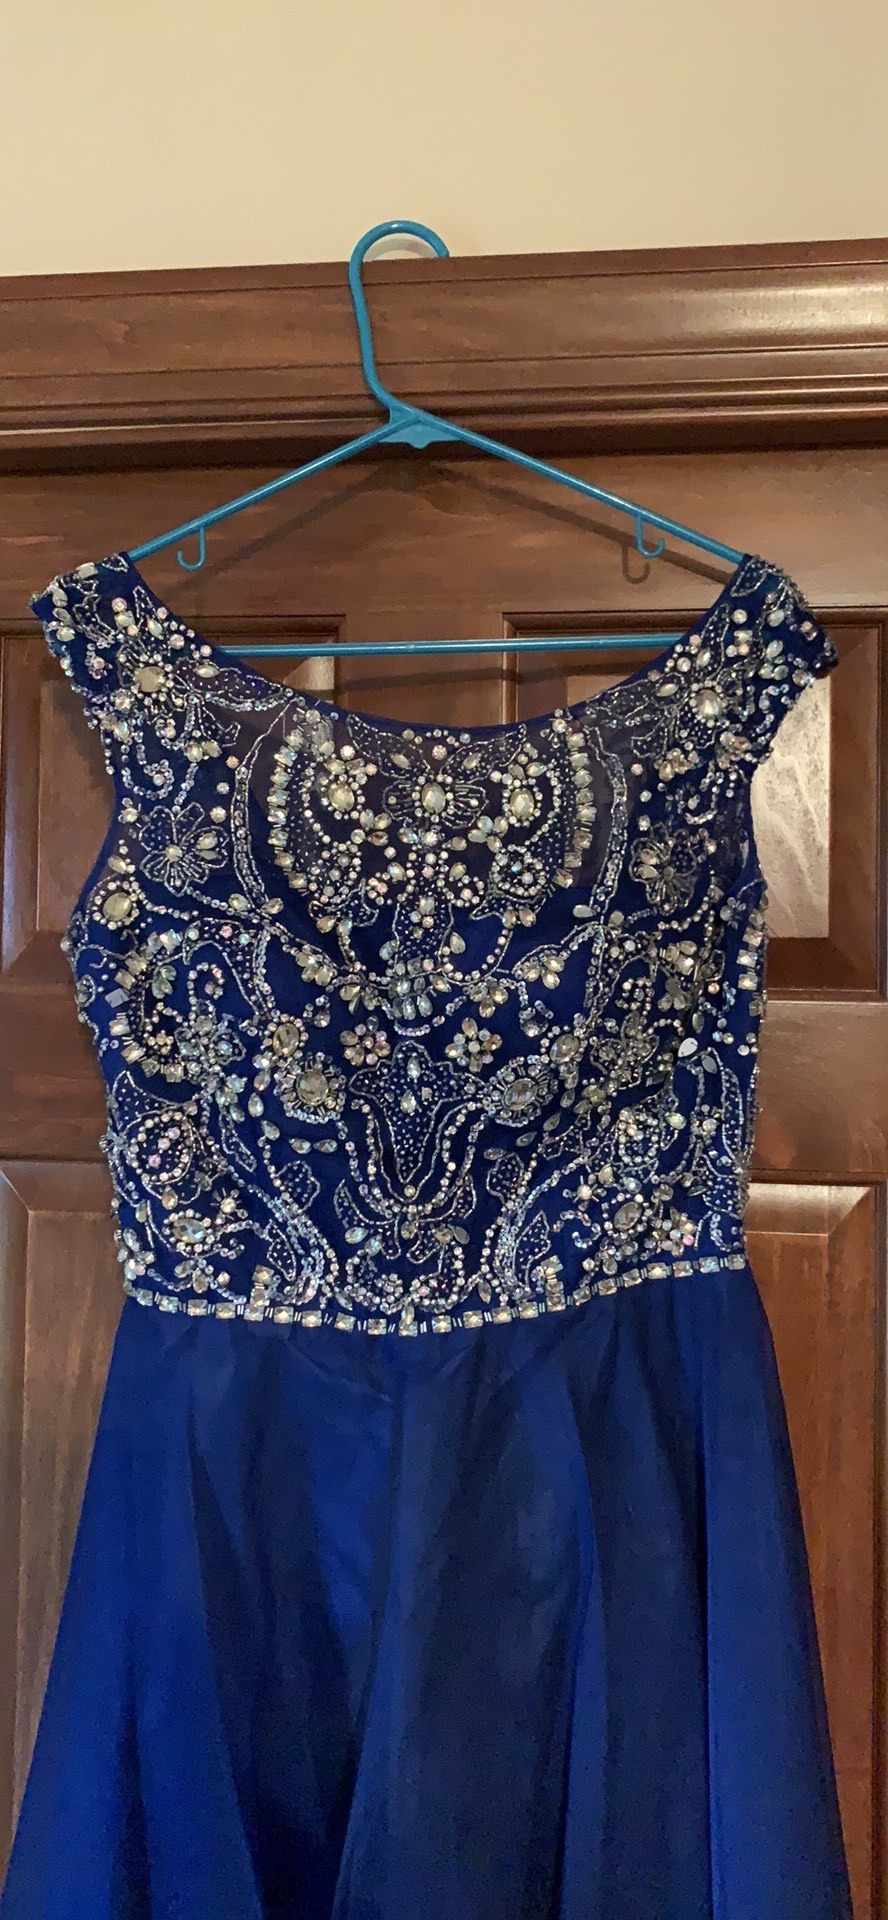 Sherri Hill Blue Size 12 Homecoming Sequin A-line Dress on Queenly